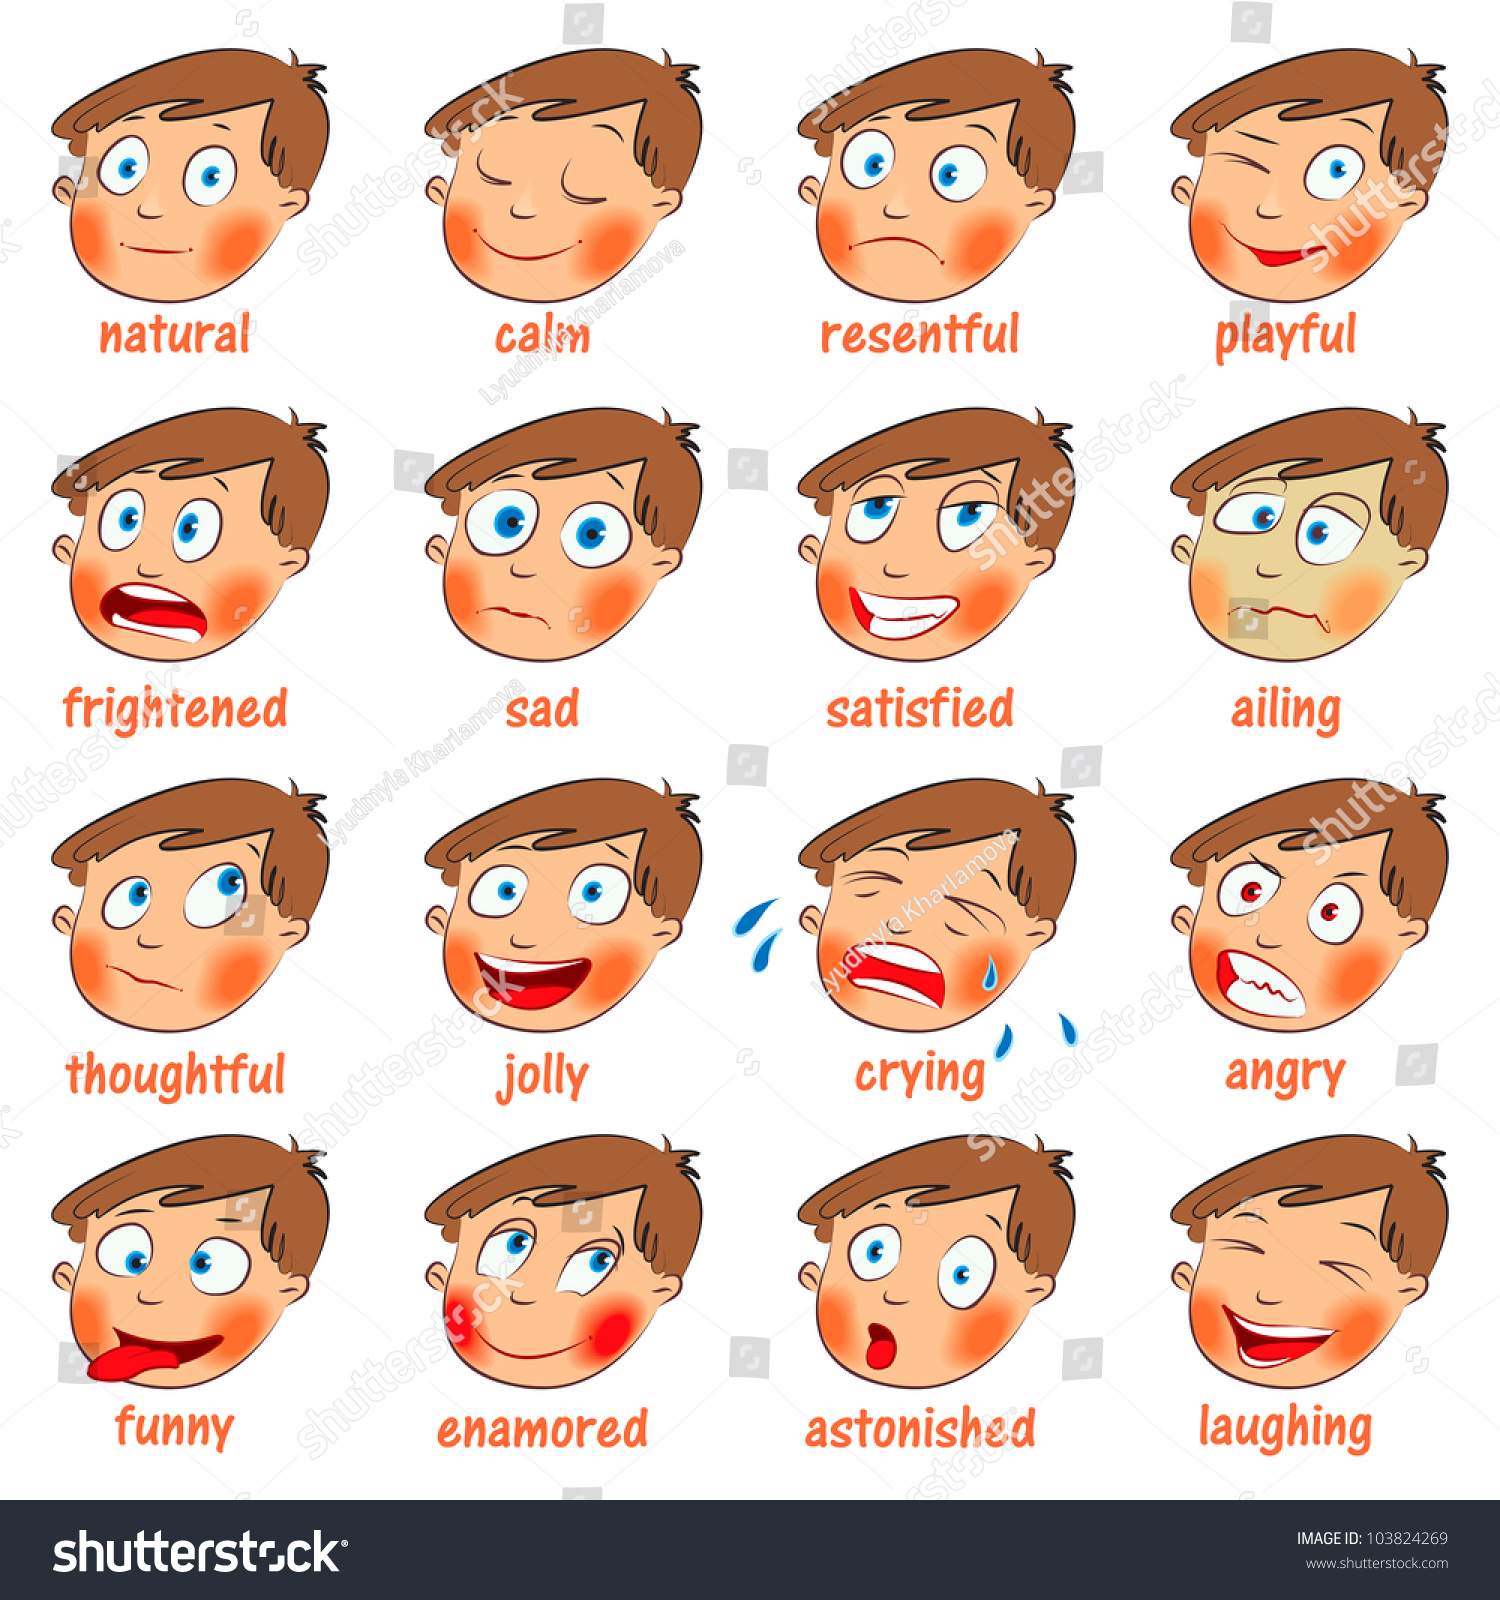 Emotions Cartoon Facial Expressions Set Natural Stock Vector